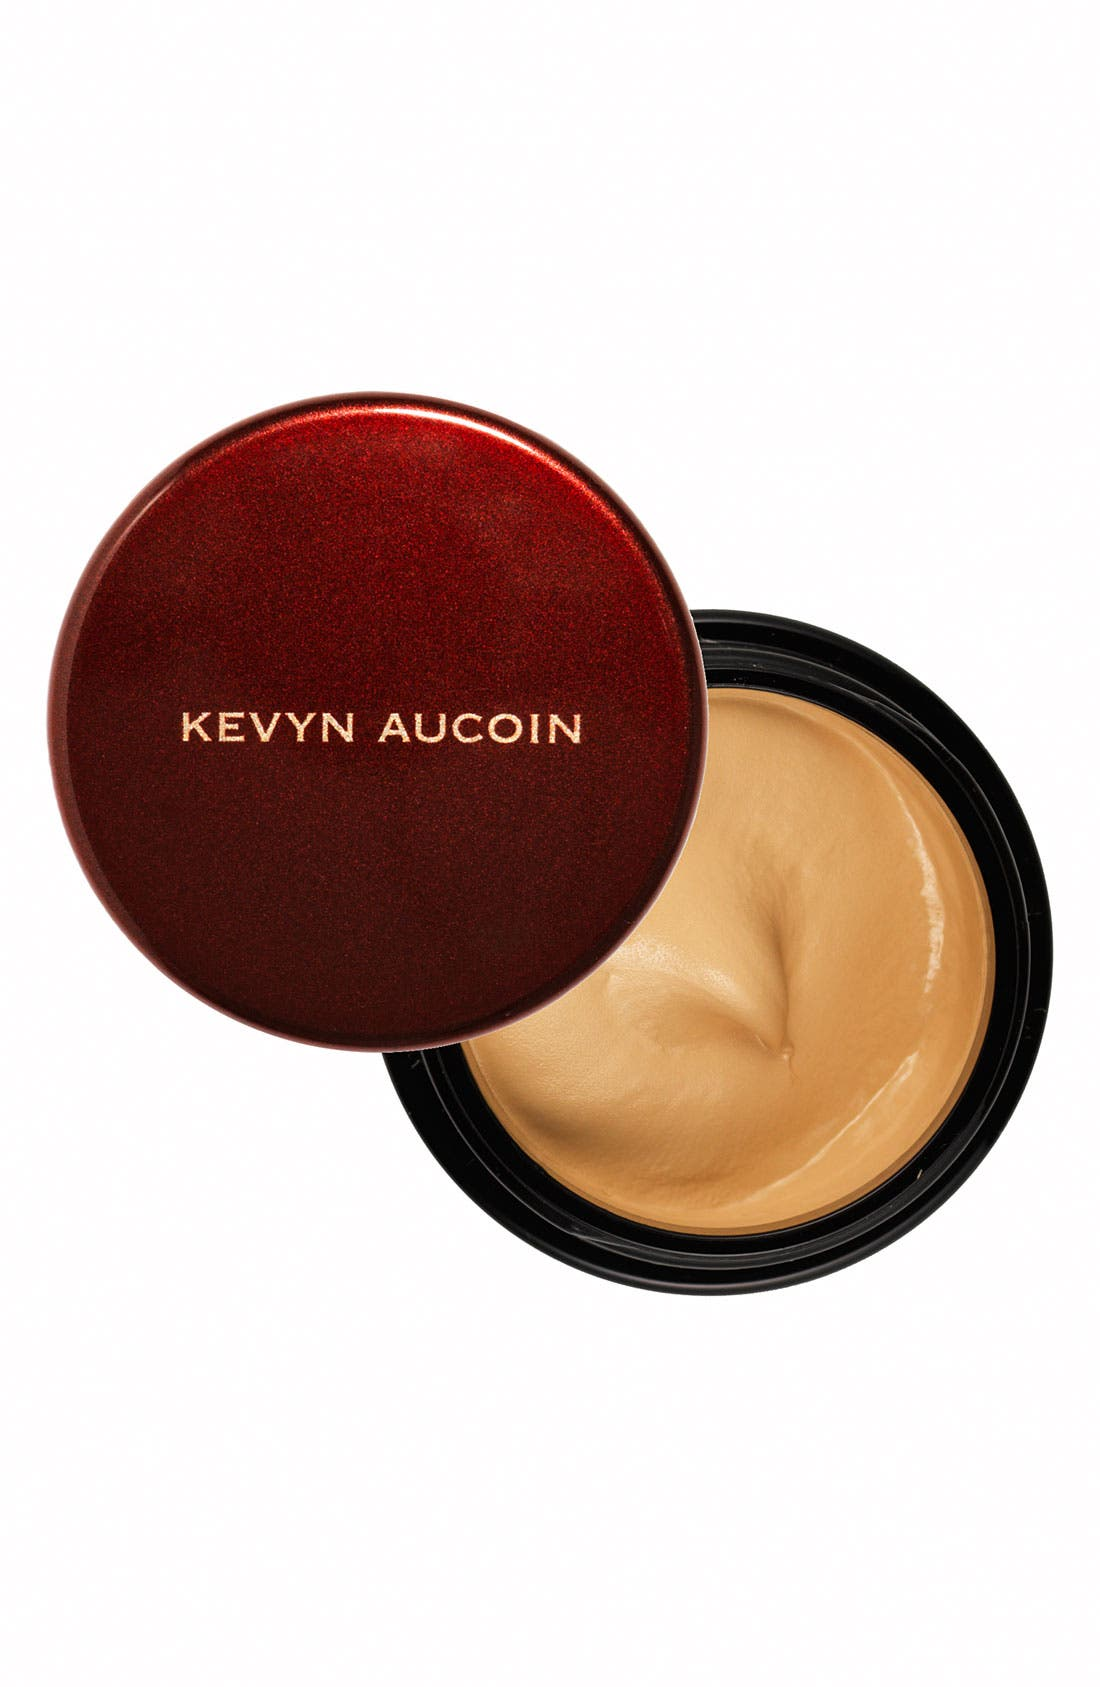 SPACE.NK.apothecary Kevyn Aucoin Beauty The Sensual Skin Enhancer